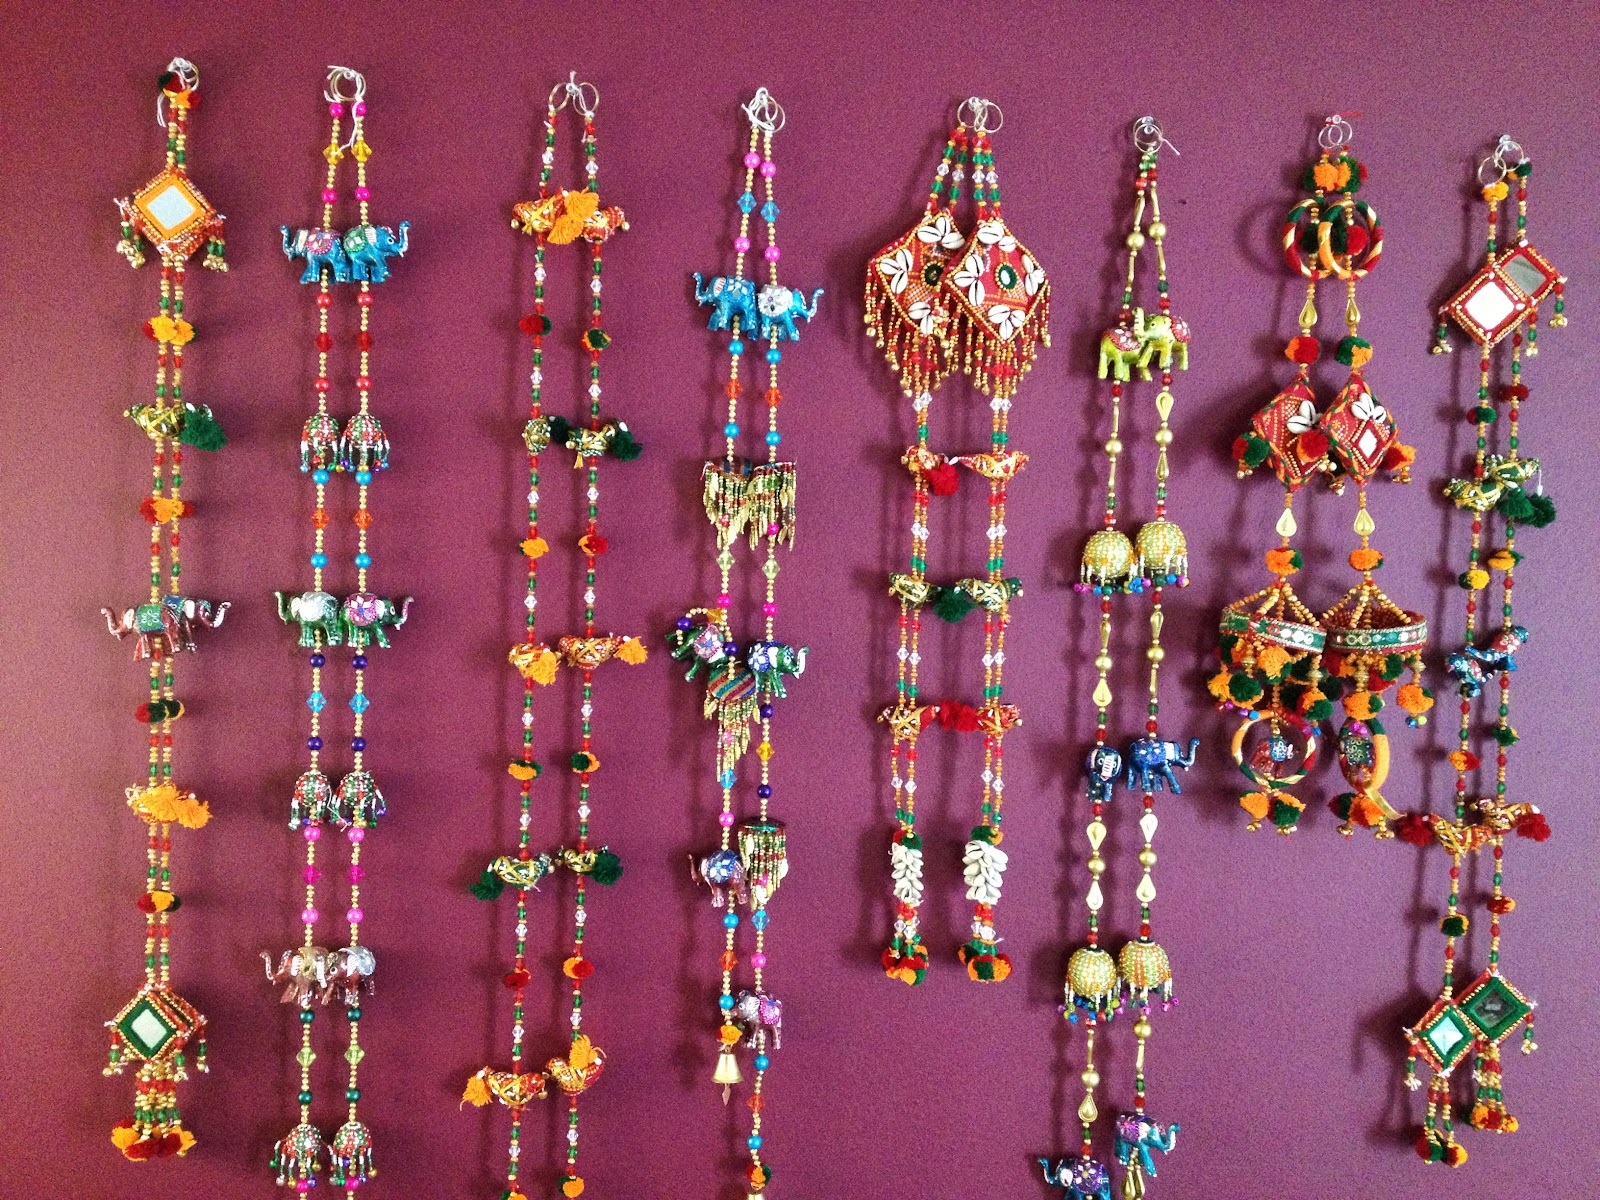 Rajasthani Wall Hangings!!!